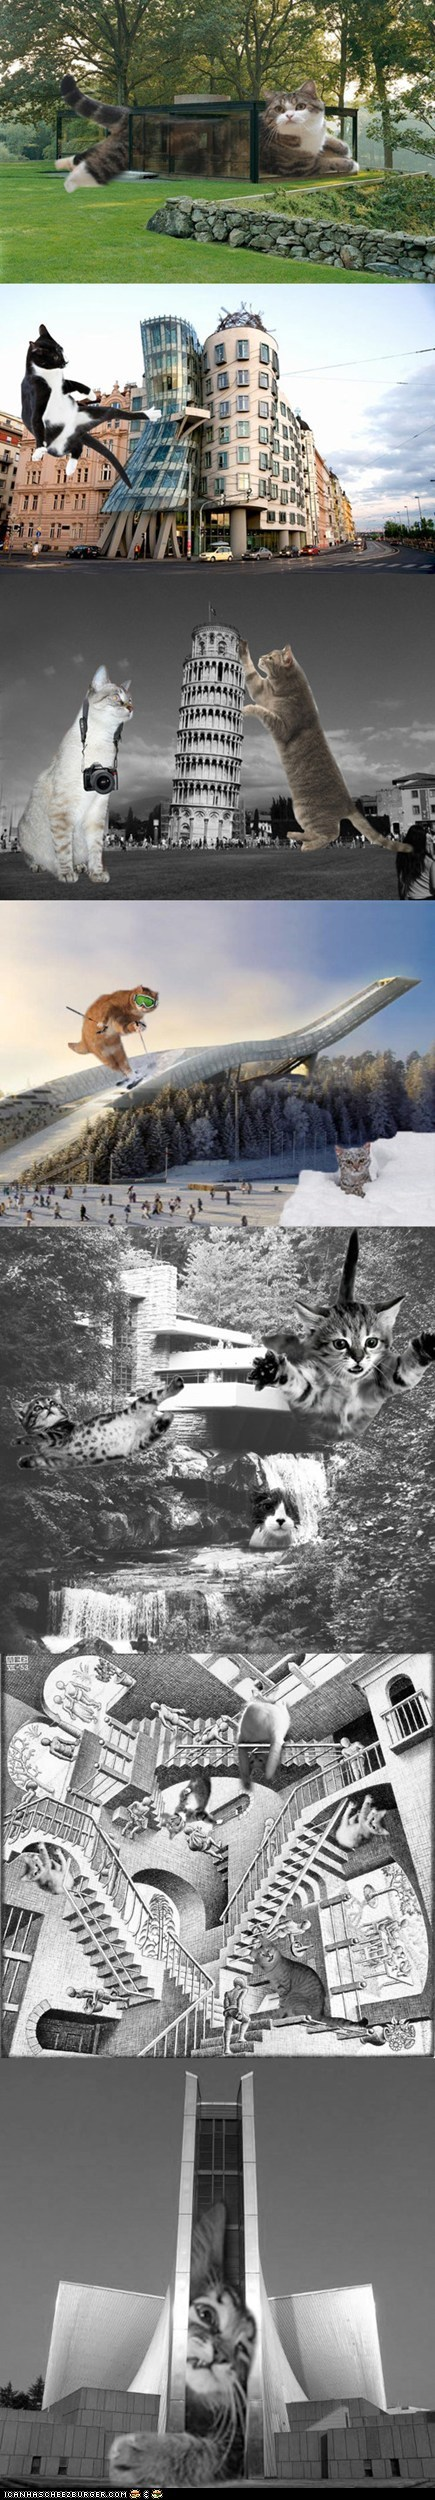 architecture buildings Cats furrocious forms photoshopped silly wtf - 6091375104